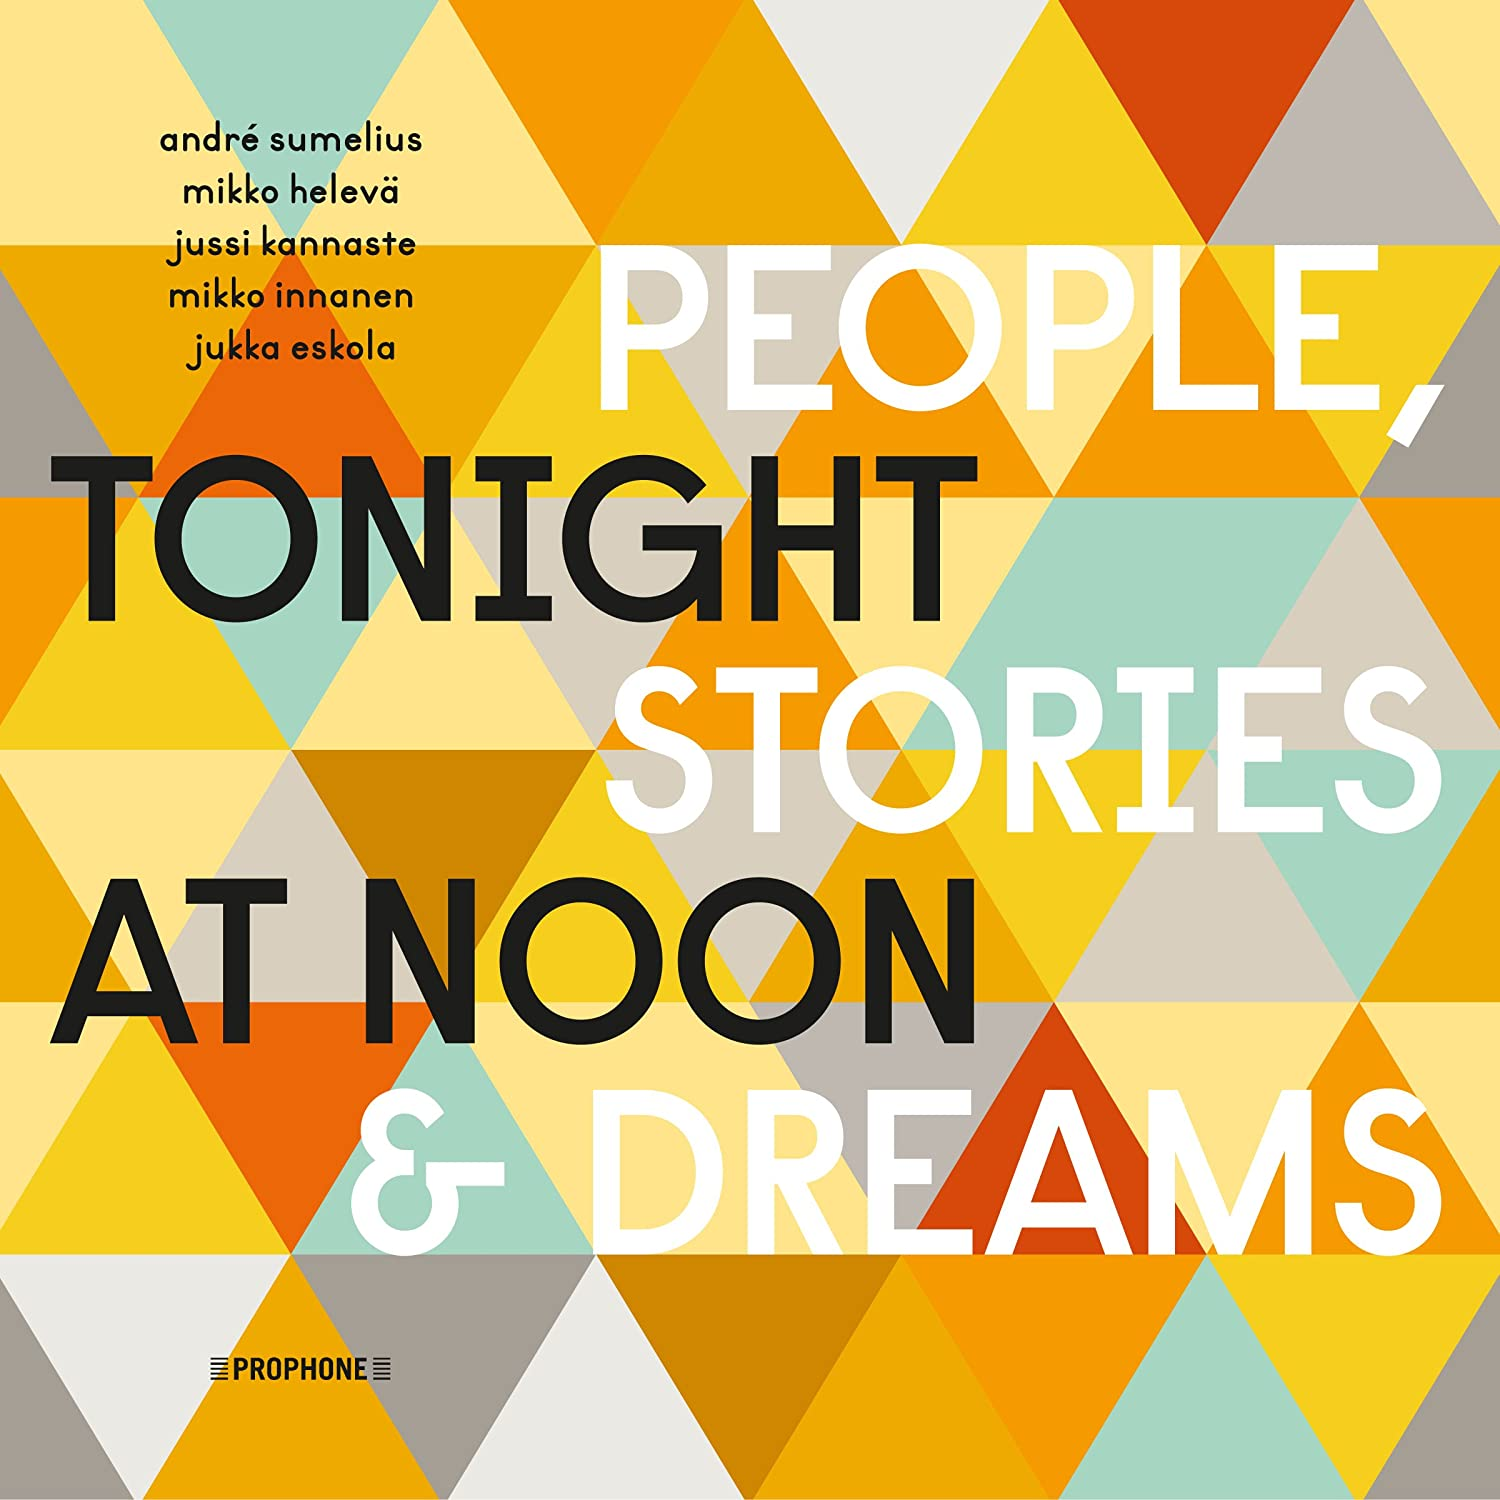 Tonight Brand new at Noon - Stories Dreams 2021 autumn and winter new People